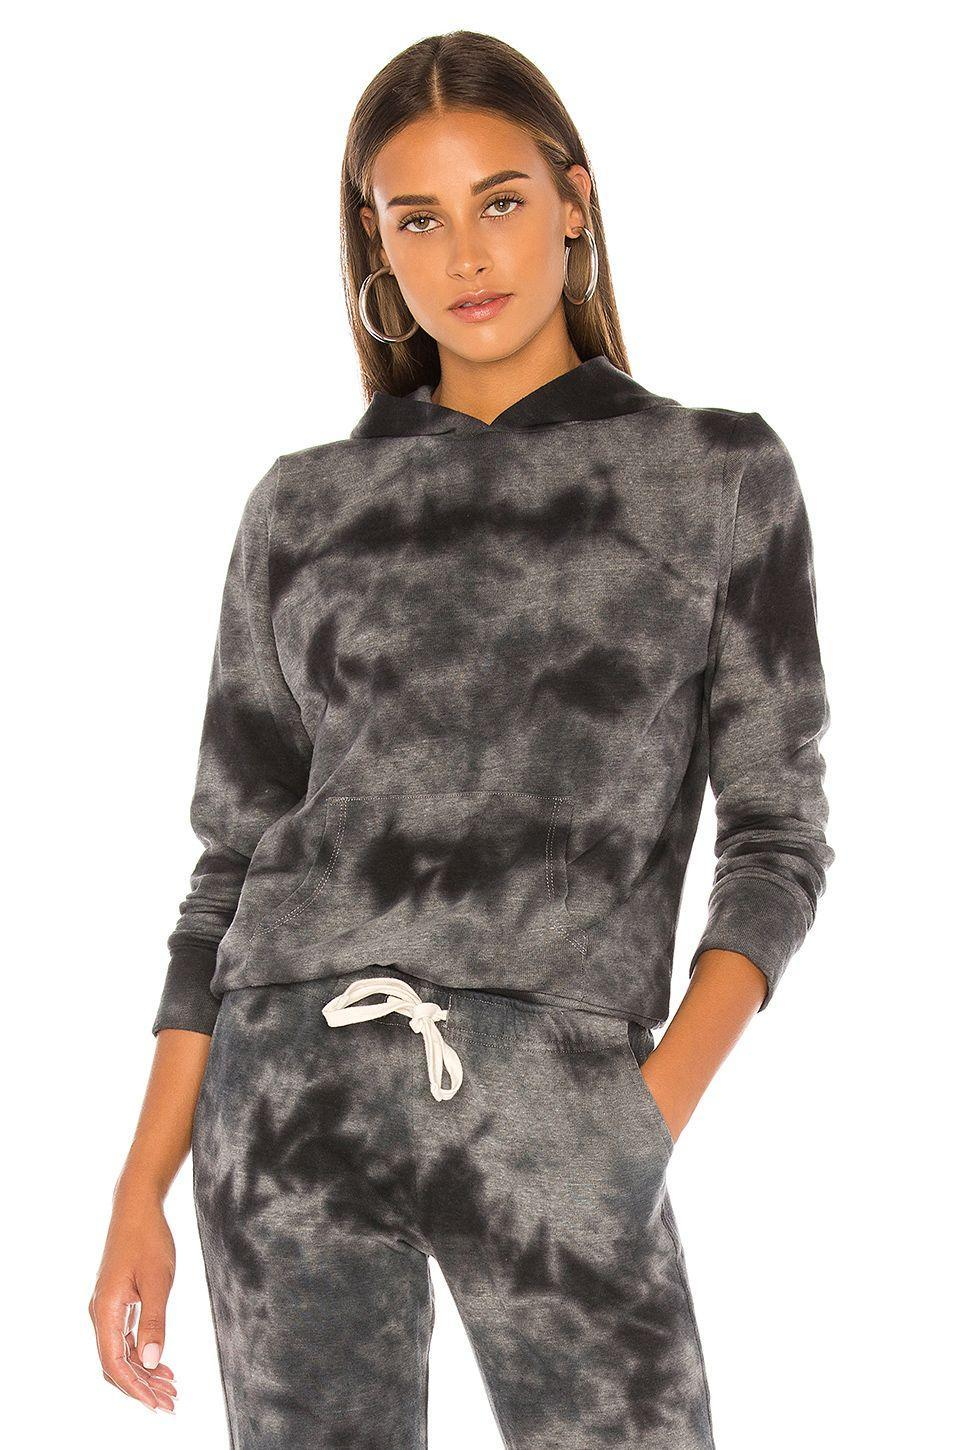 """<p><strong>MONROW</strong></p><p>revolve.com</p><p><strong>$139.00</strong></p><p><a href=""""https://go.redirectingat.com?id=74968X1596630&url=https%3A%2F%2Fwww.revolve.com%2Fdp%2FHARL-WK81%2F&sref=https%3A%2F%2Fwww.goodhousekeeping.com%2Fclothing%2Fg35044369%2Fbest-matching-sweatsuits-women%2F"""" rel=""""nofollow noopener"""" target=""""_blank"""" data-ylk=""""slk:Shop Now"""" class=""""link rapid-noclick-resp"""">Shop Now</a></p><p>Textile Director Lexie Sachs loves Monrow for their <strong>fun and flattering prints</strong>. While she hasn't tried this exact set, Sachs owns a few older styles, saying they make great pieces when you want to feel comfortable but a little bit put together. """"The brand is a little pricey,"""" she says, """"but the quality has proven itself — no pilling even after years of use!"""" </p>"""